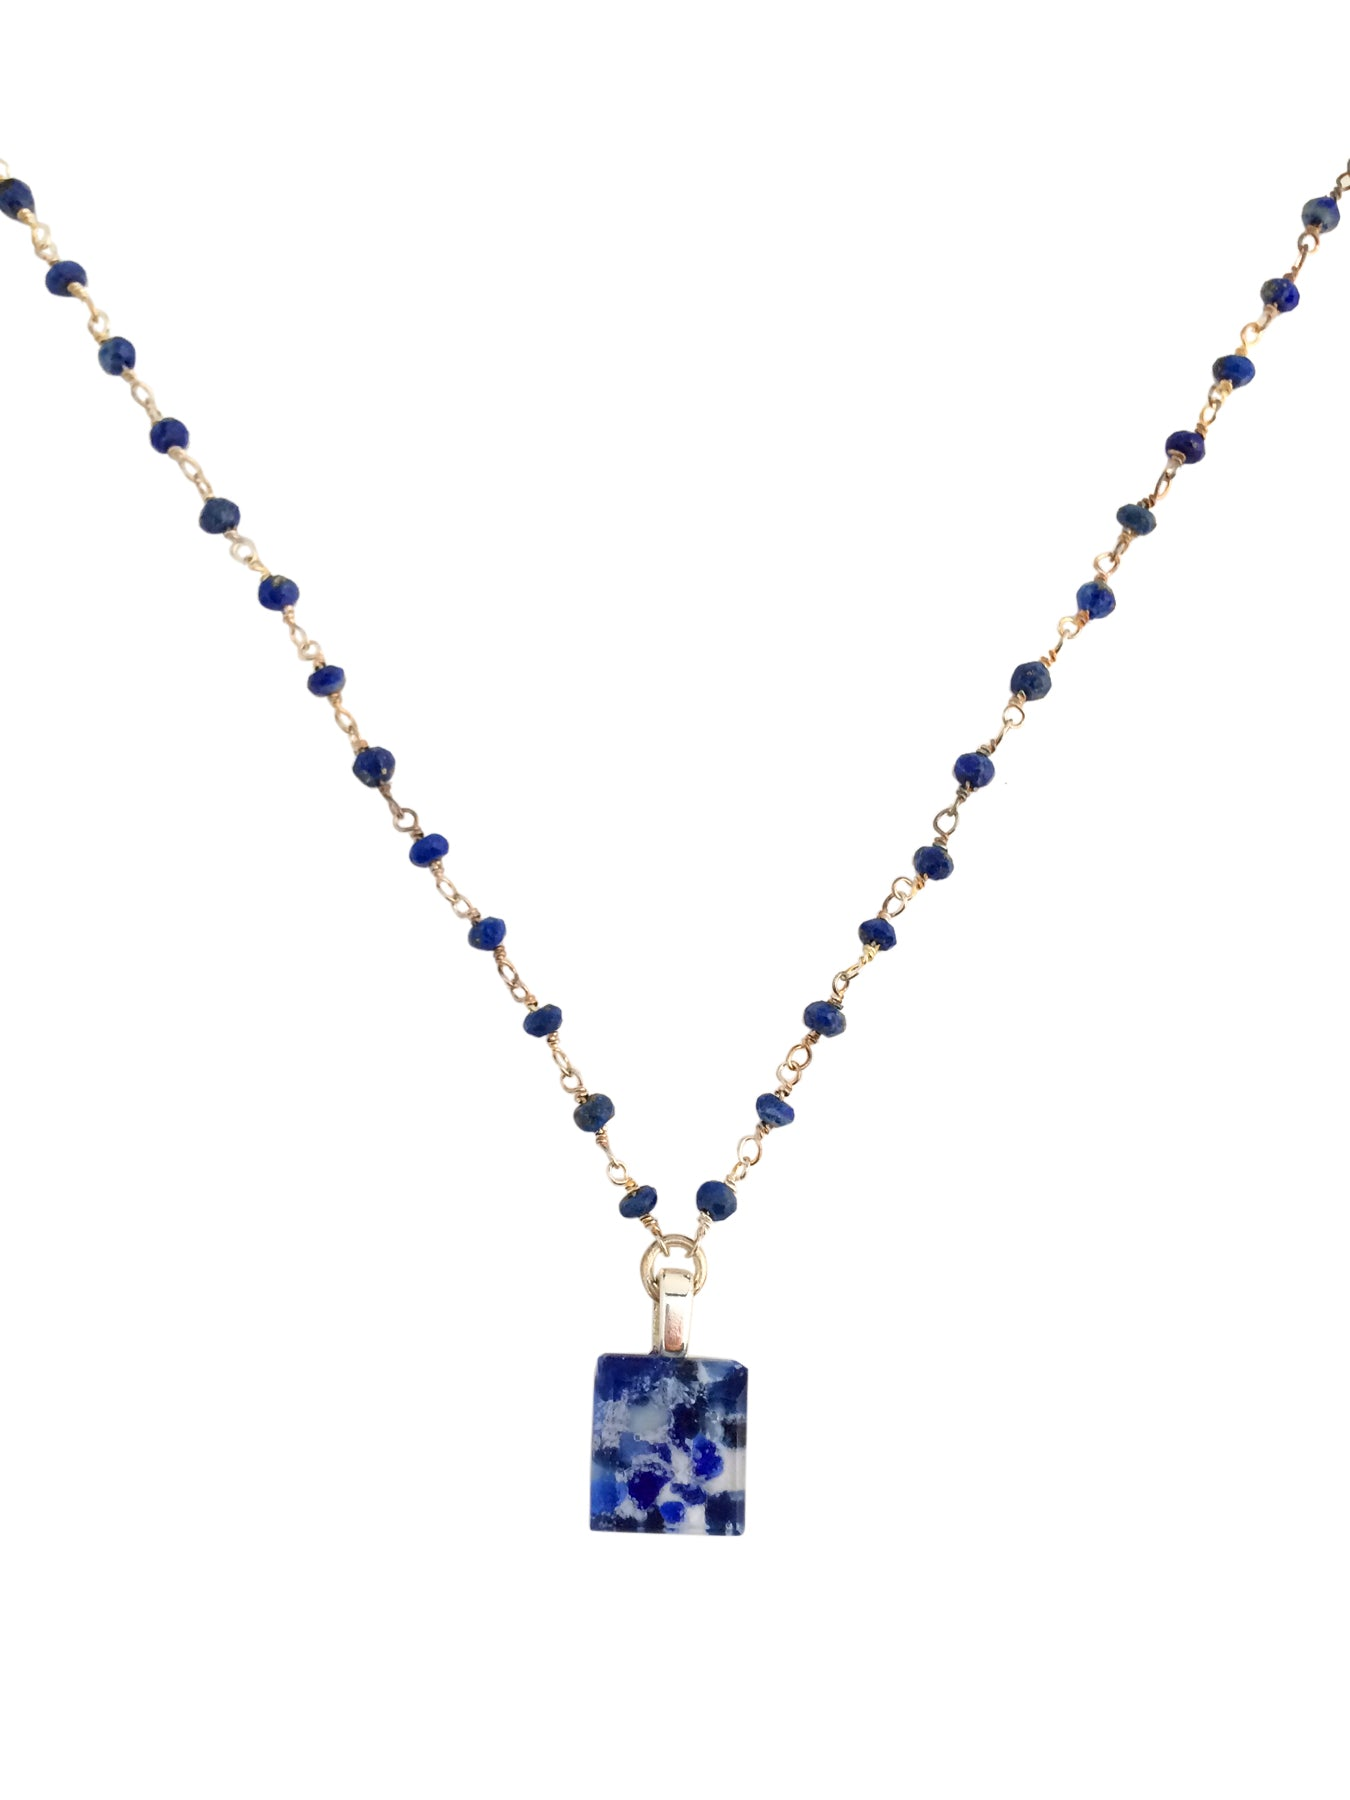 Tiny Fused Glass Stone Blue Necklace with Sterling Silver & Lapis Chain